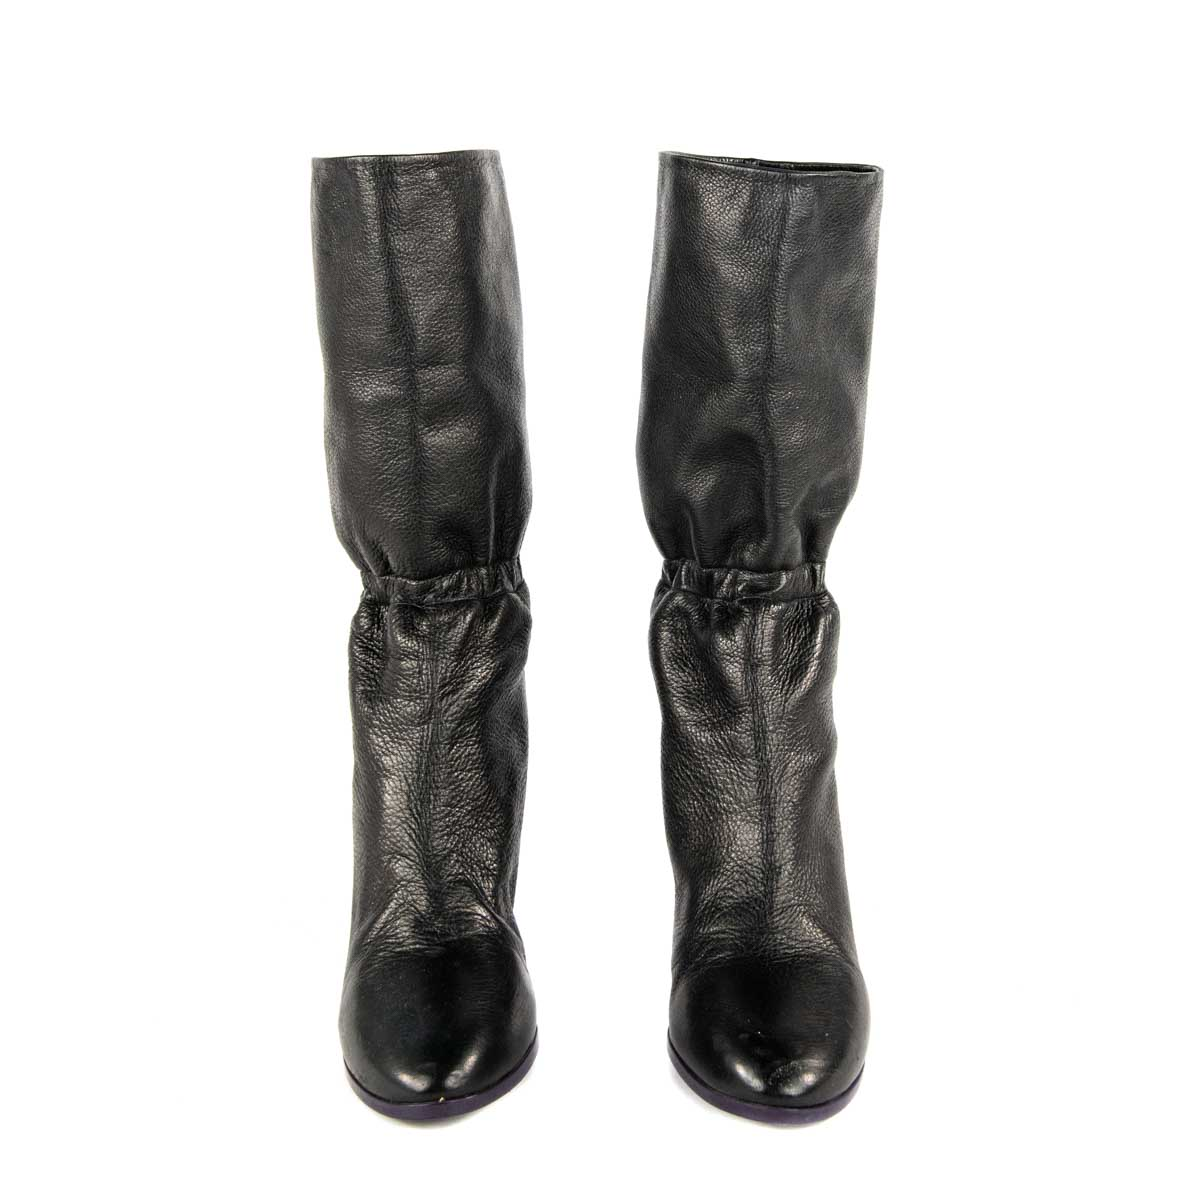 Black with purple detail leather boot 7.5